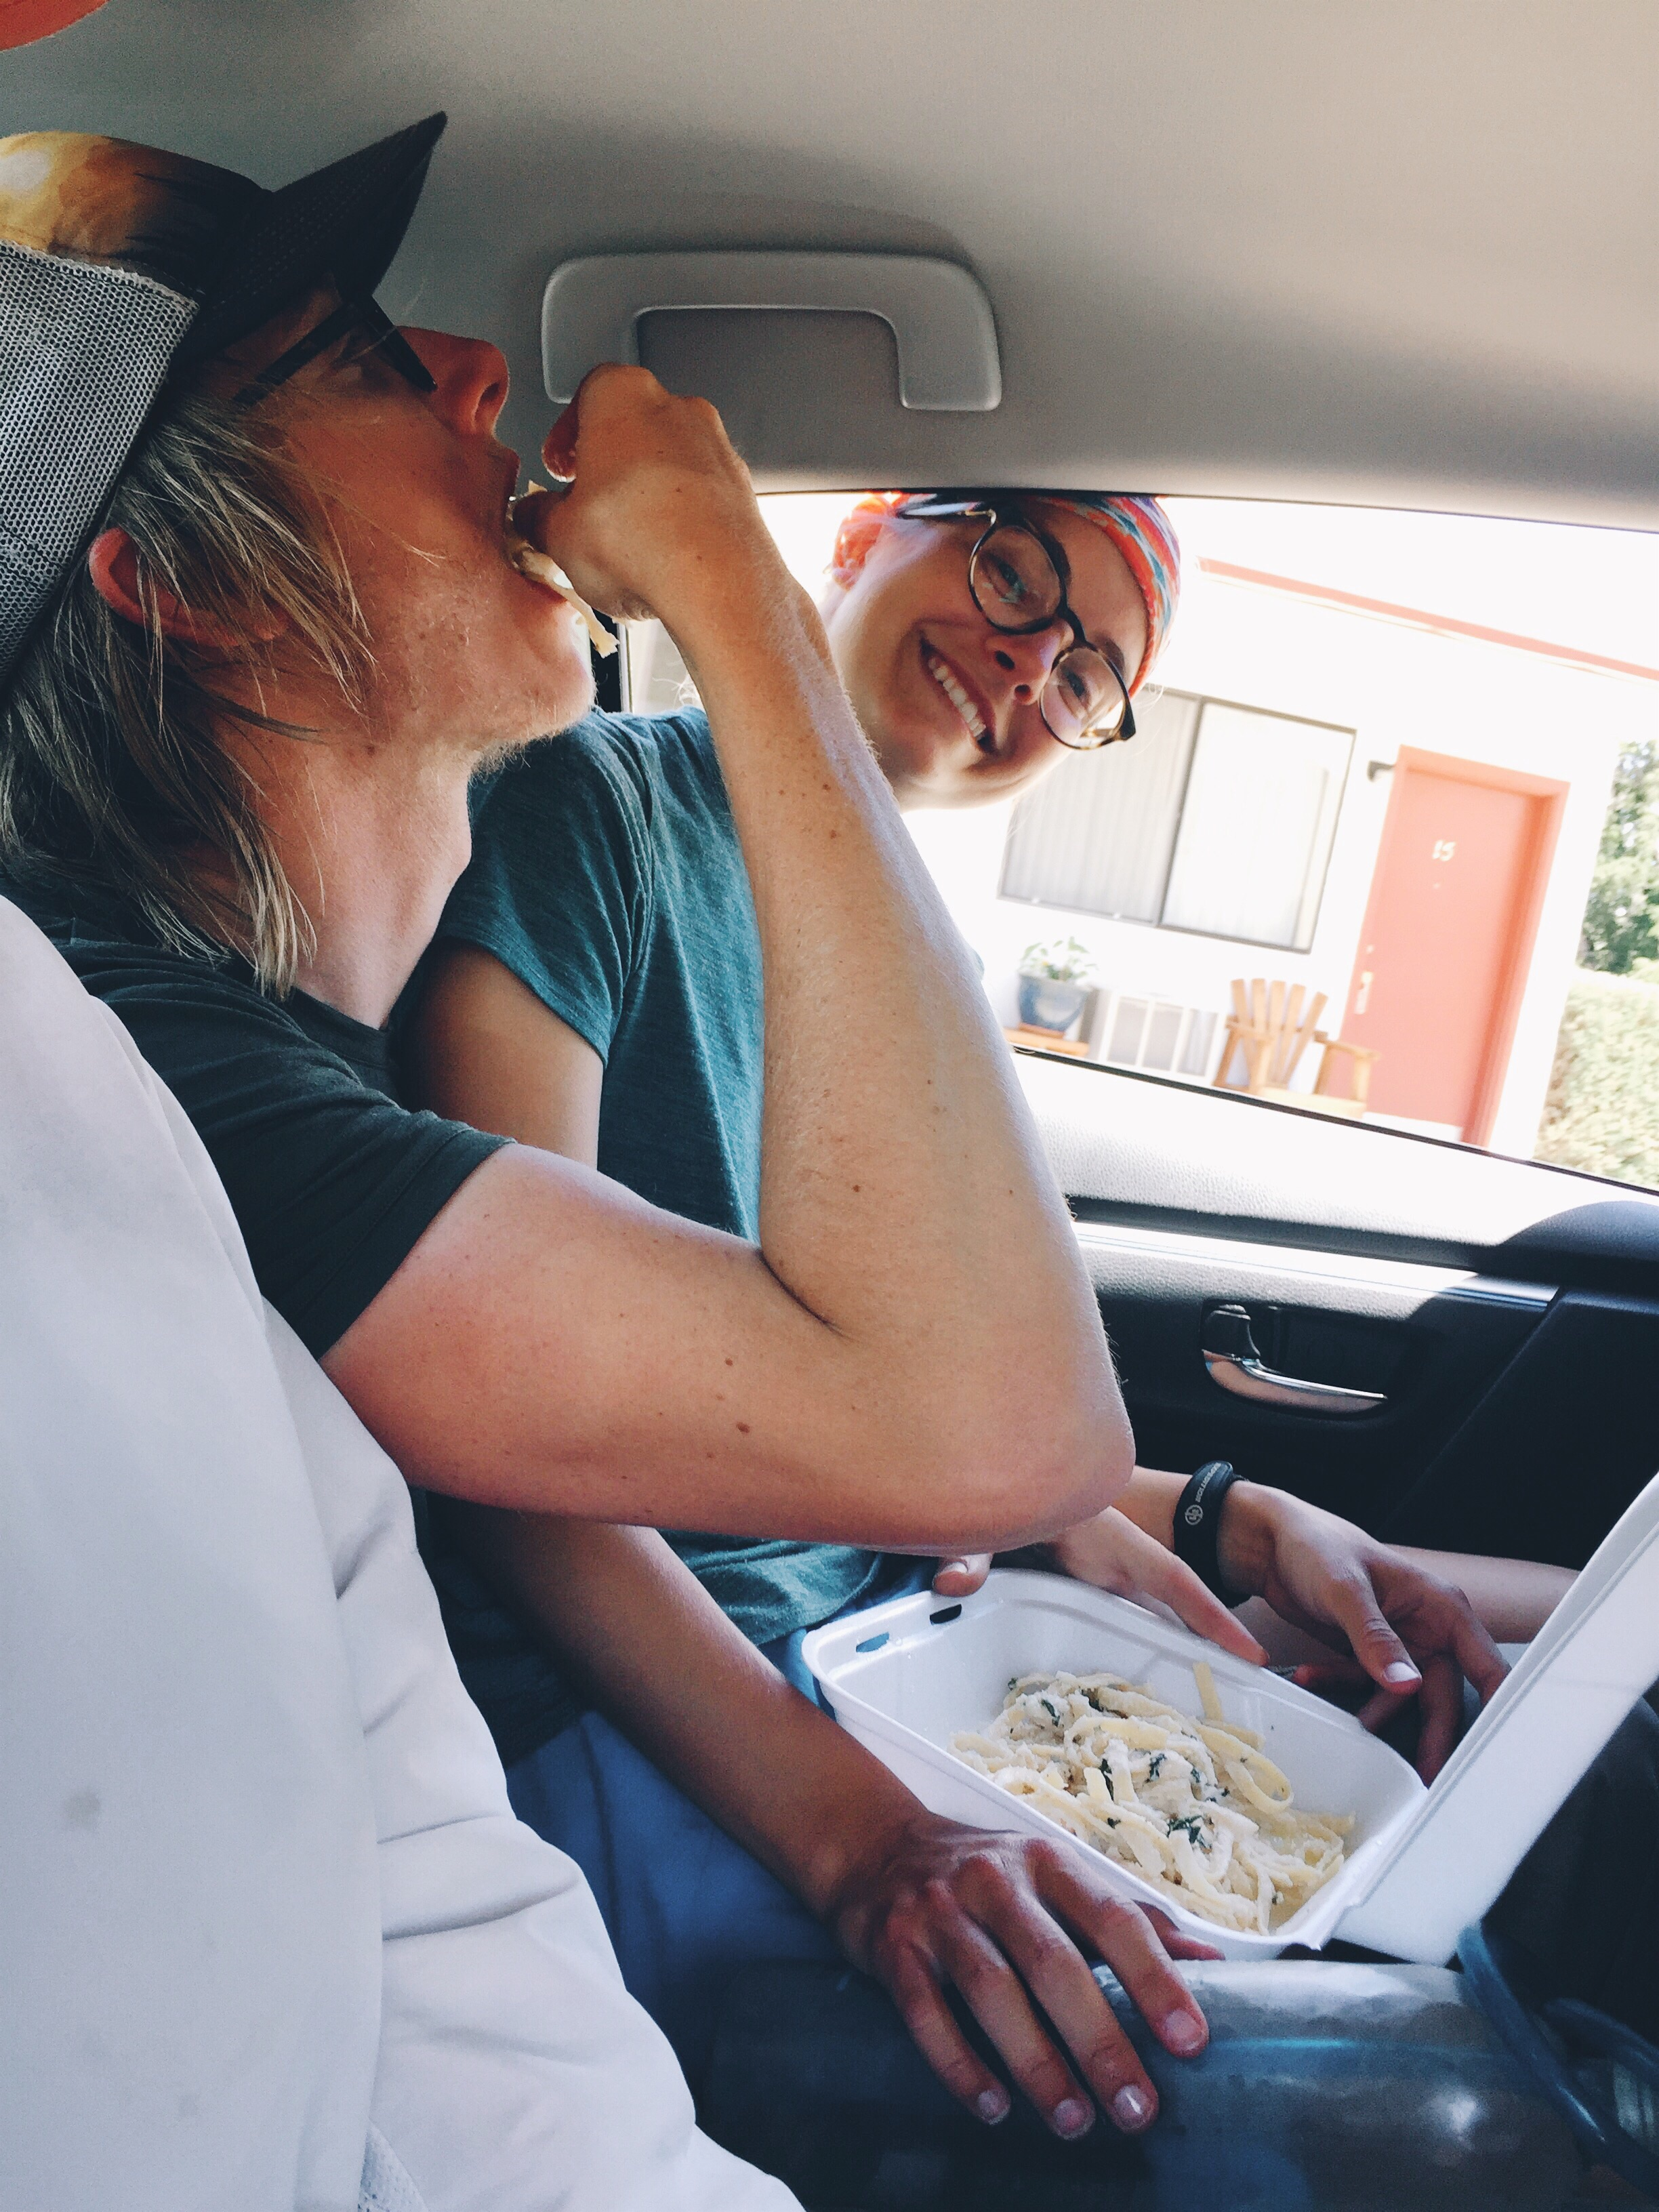 Eating leftover pasta in the car.